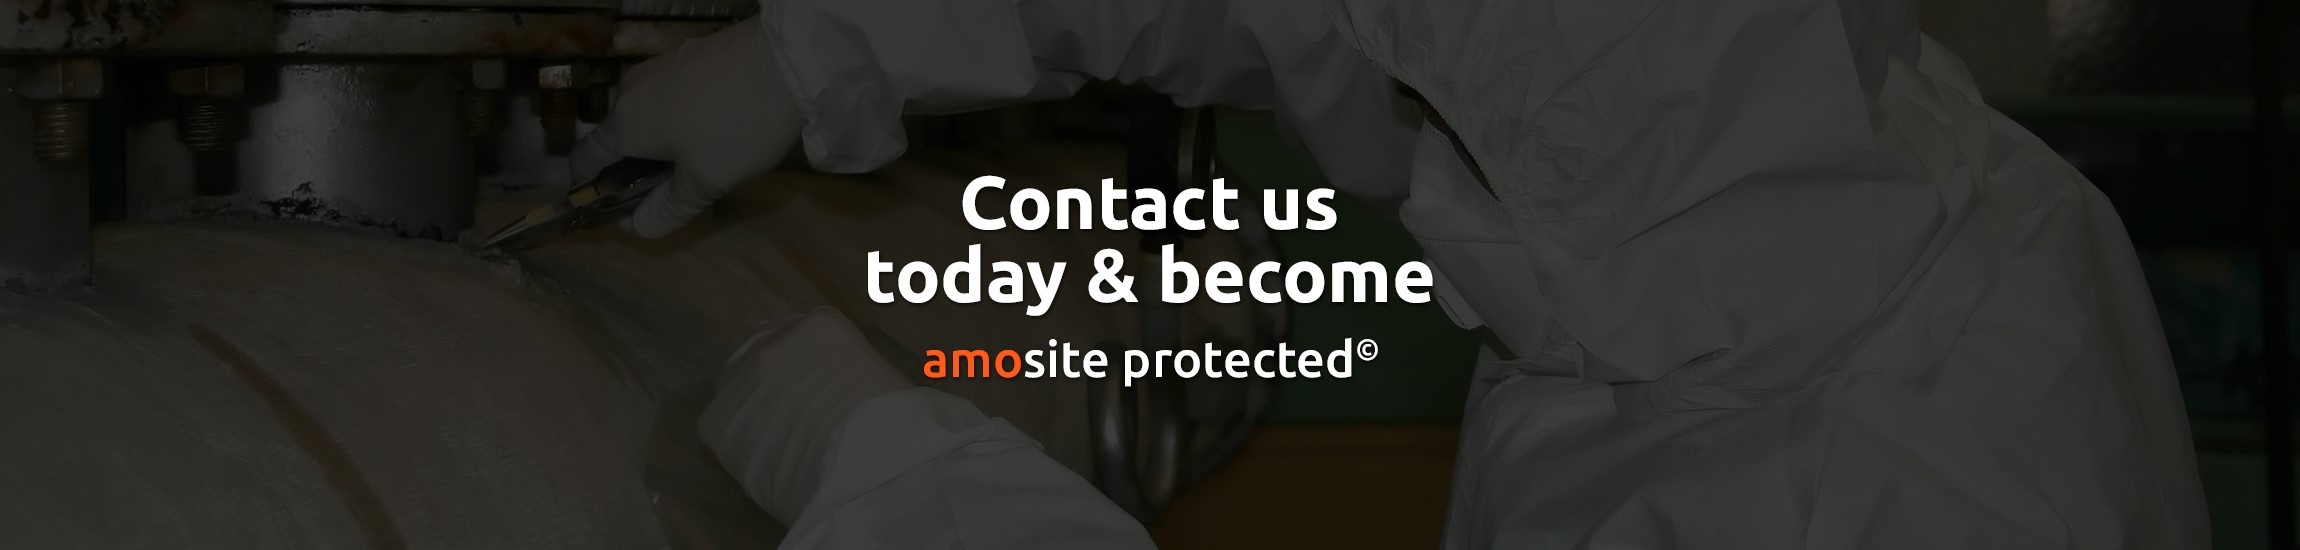 Contact Amosite Asbestos Management Today